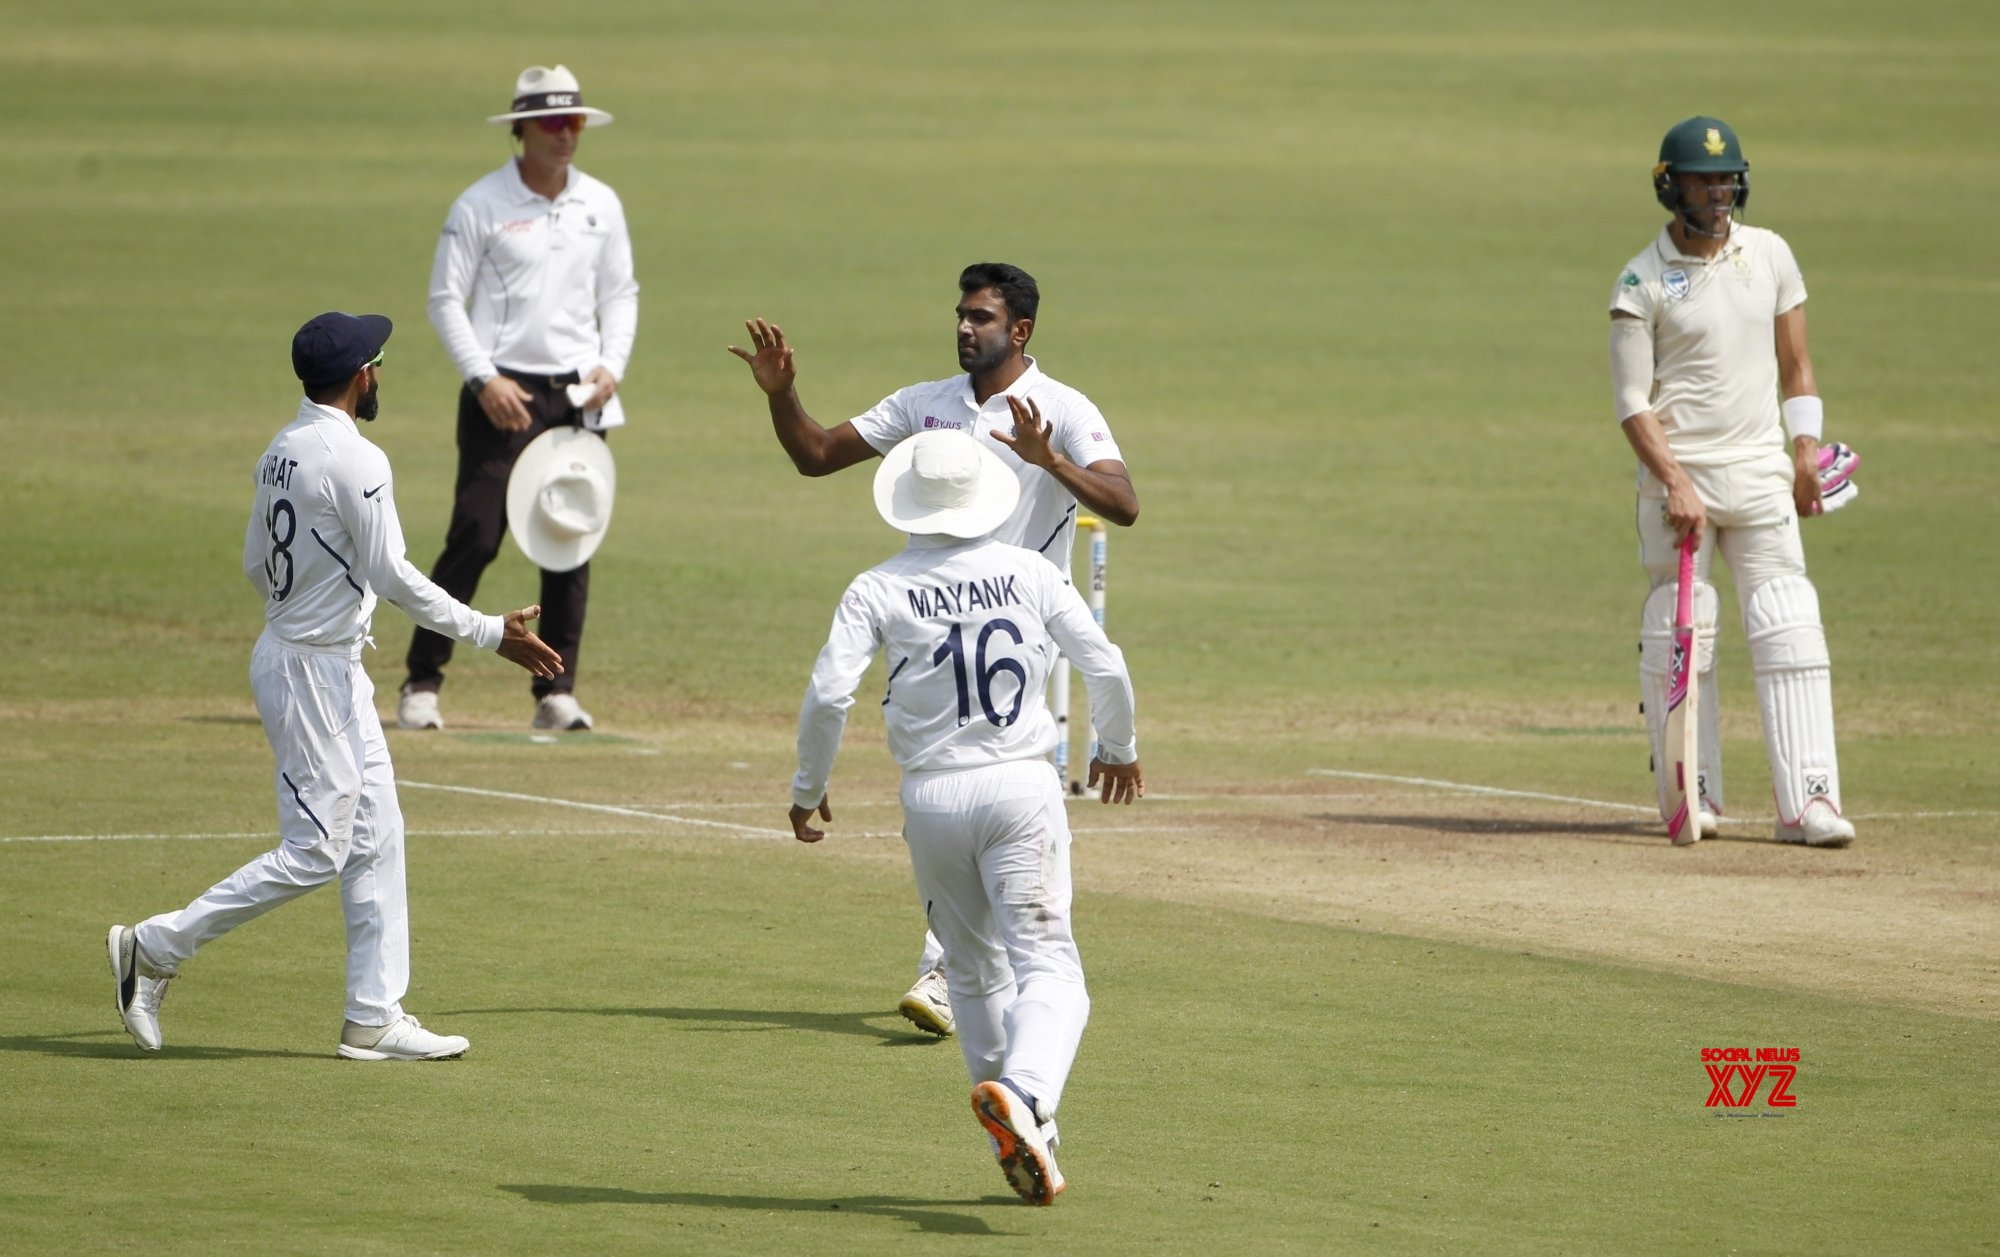 Captain's call on follow-on, depends on bowlers' recovery: Ashwin